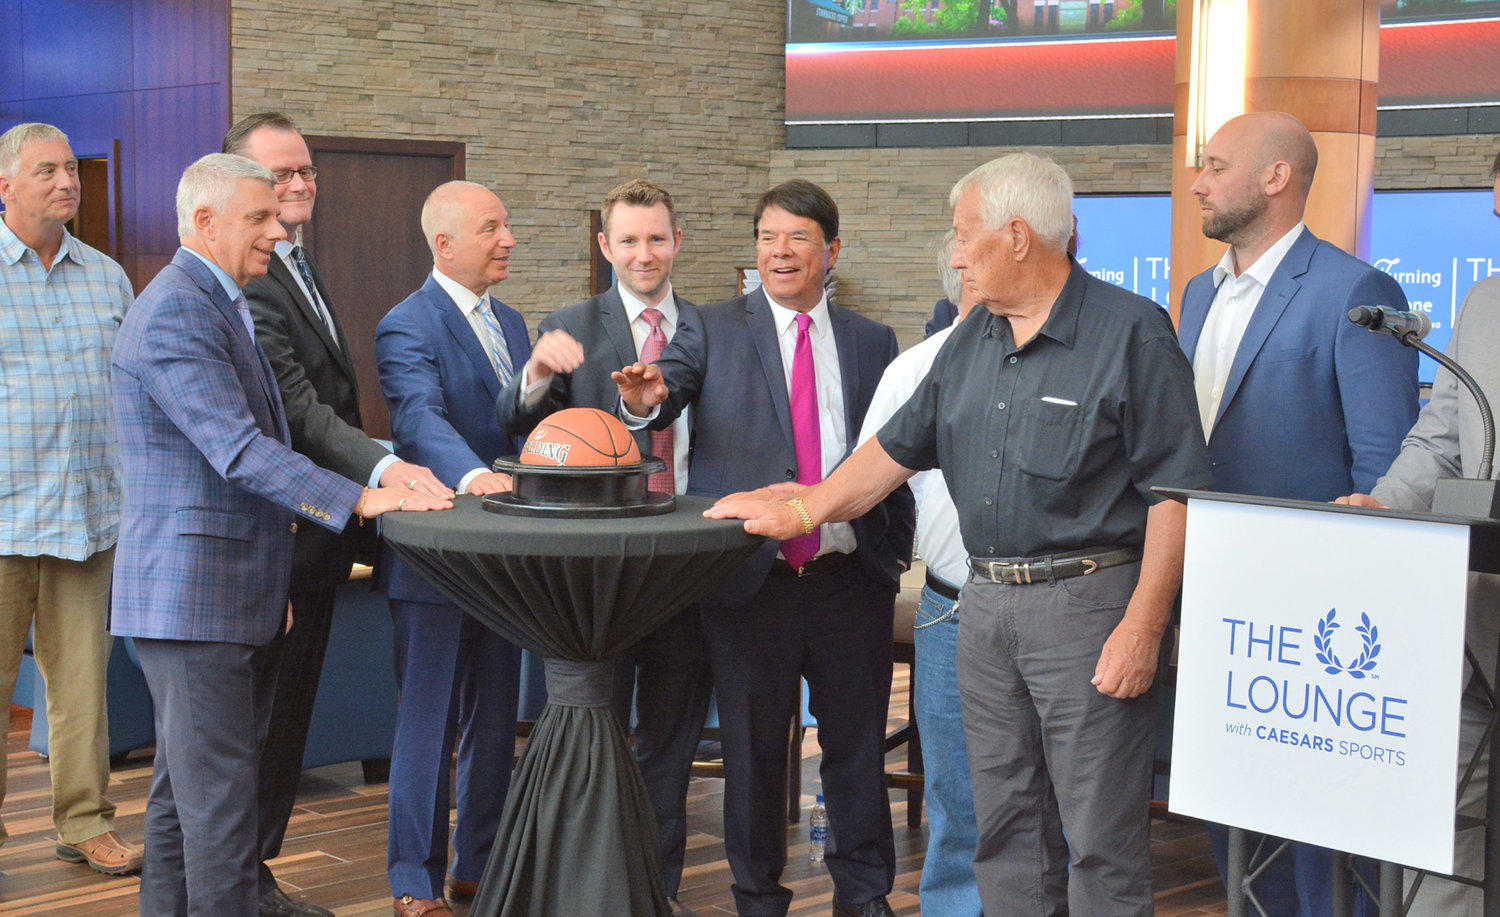 "EYES ON THE BALL— Oneida Nation CEO Ray Halbritter leads the pack in pushing the basketball start device launching the new ""The Lounge with Caesars Sports"" sports book on Thursday, Aug. 1 at the Turning Stone Casino. Pictured from left are Super Bowl LIV prize winner Peter Cantalupe; Oneida County Executive Anthony J. Picente Jr.; Verona Town Supervisor Scott Musacchio; the head of Scientific Games Howard Glaser; Senior Vice President of Strategic Development at Caesars Entertainment Walt Fales; Halbritter; Wolf Clan member Chuck Fougnier and President of the Utica Comets Rob Esche."